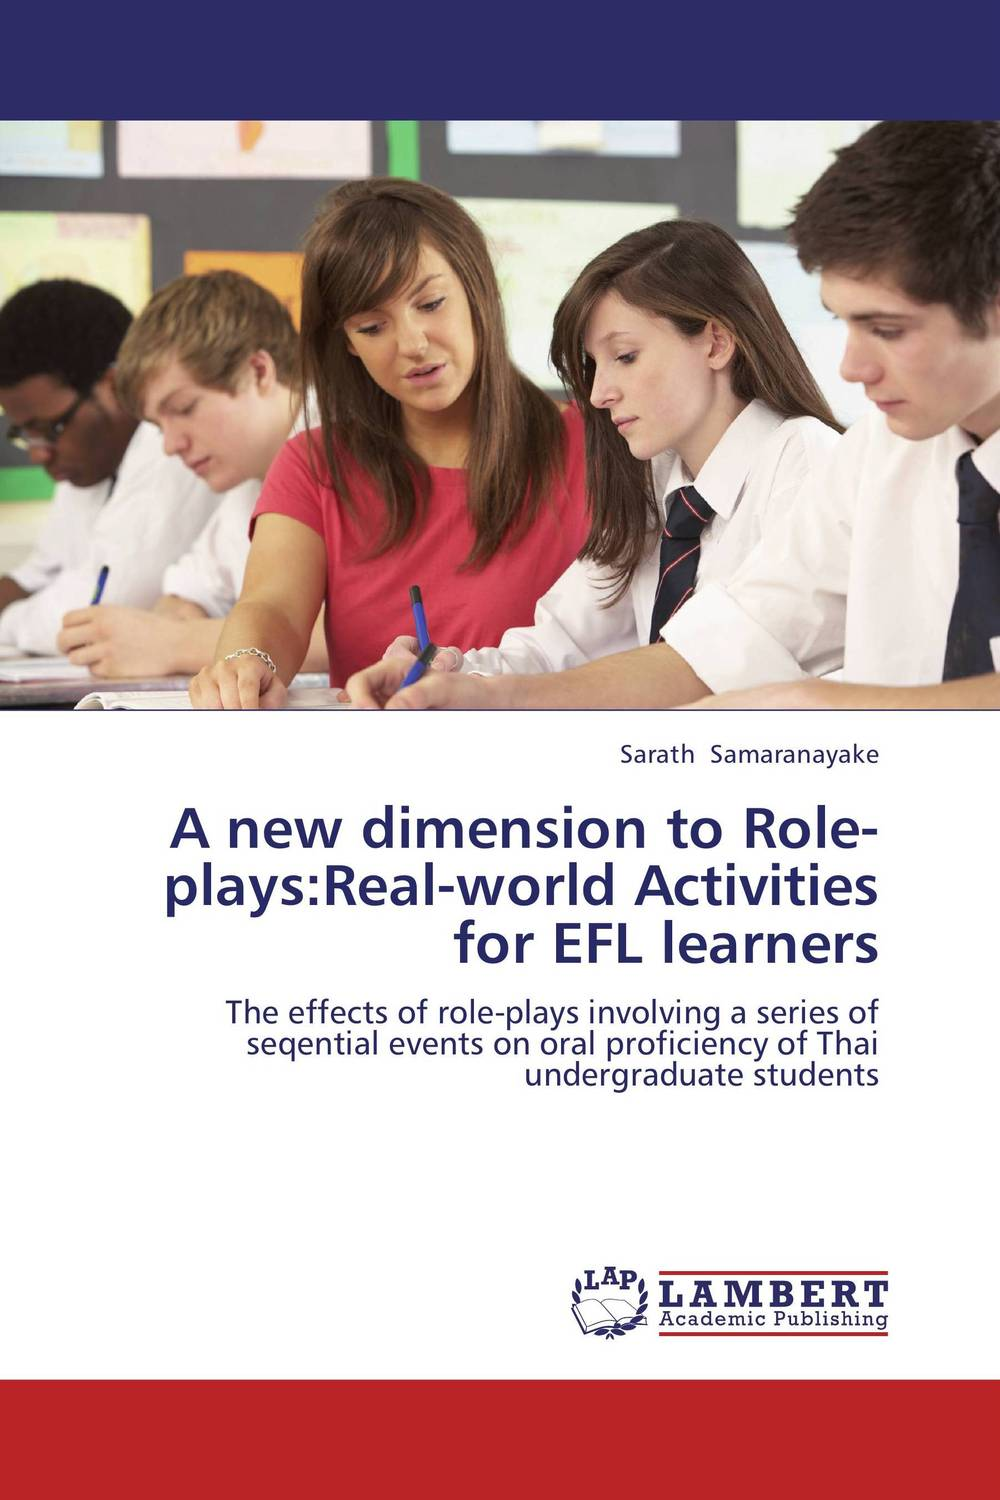 A new dimension to Role-plays:Real-world Activities for EFL learners the role of absurdity within english humour